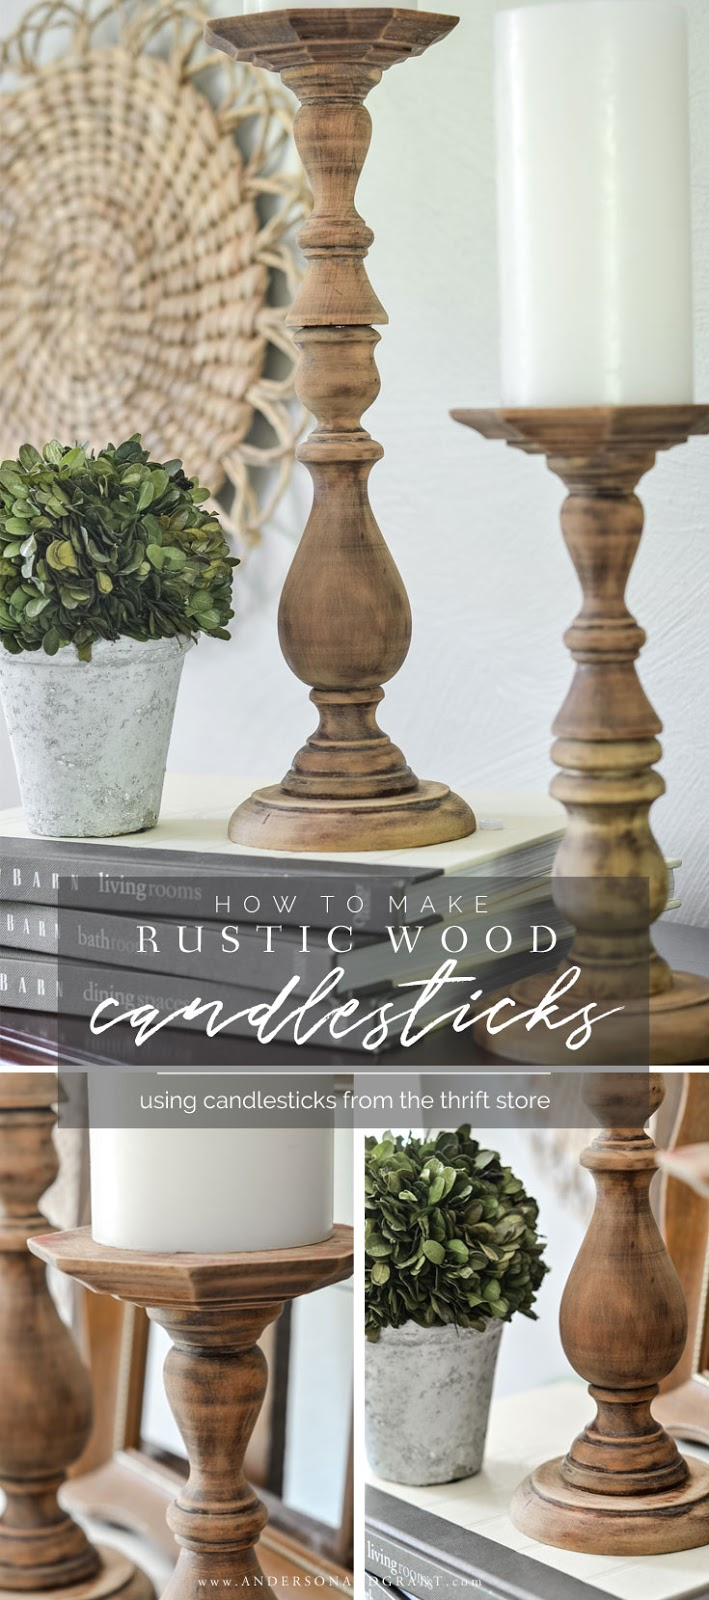 Learn to make these easy DIY rustic wood candlesticks using a thrift store find. #fixerupper #DIY #howtomake #thriftstore  |  www.andersonandgrant.com